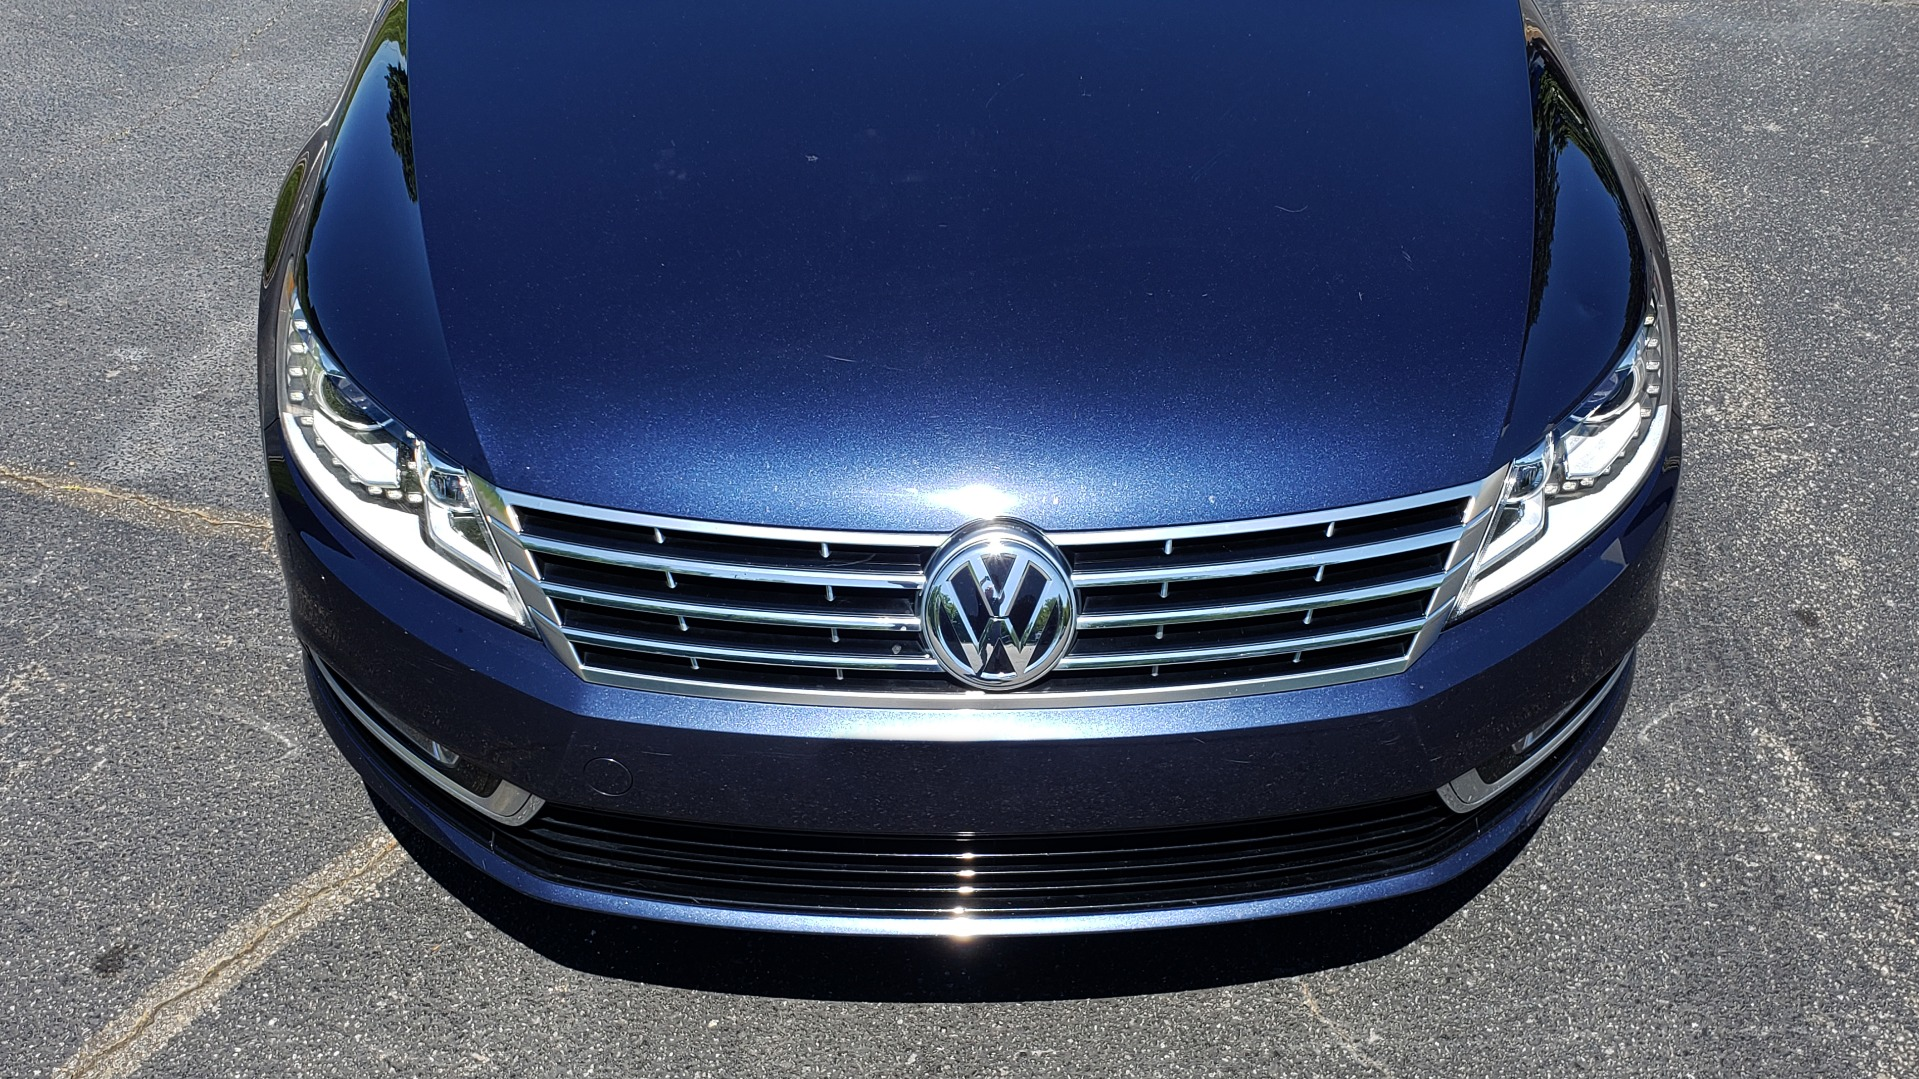 Used 2013 Volkswagen CC SPORT W/LIGHTING PKG / 2.0L 4-CYL / DSG 6-SPD AUTO for sale Sold at Formula Imports in Charlotte NC 28227 22